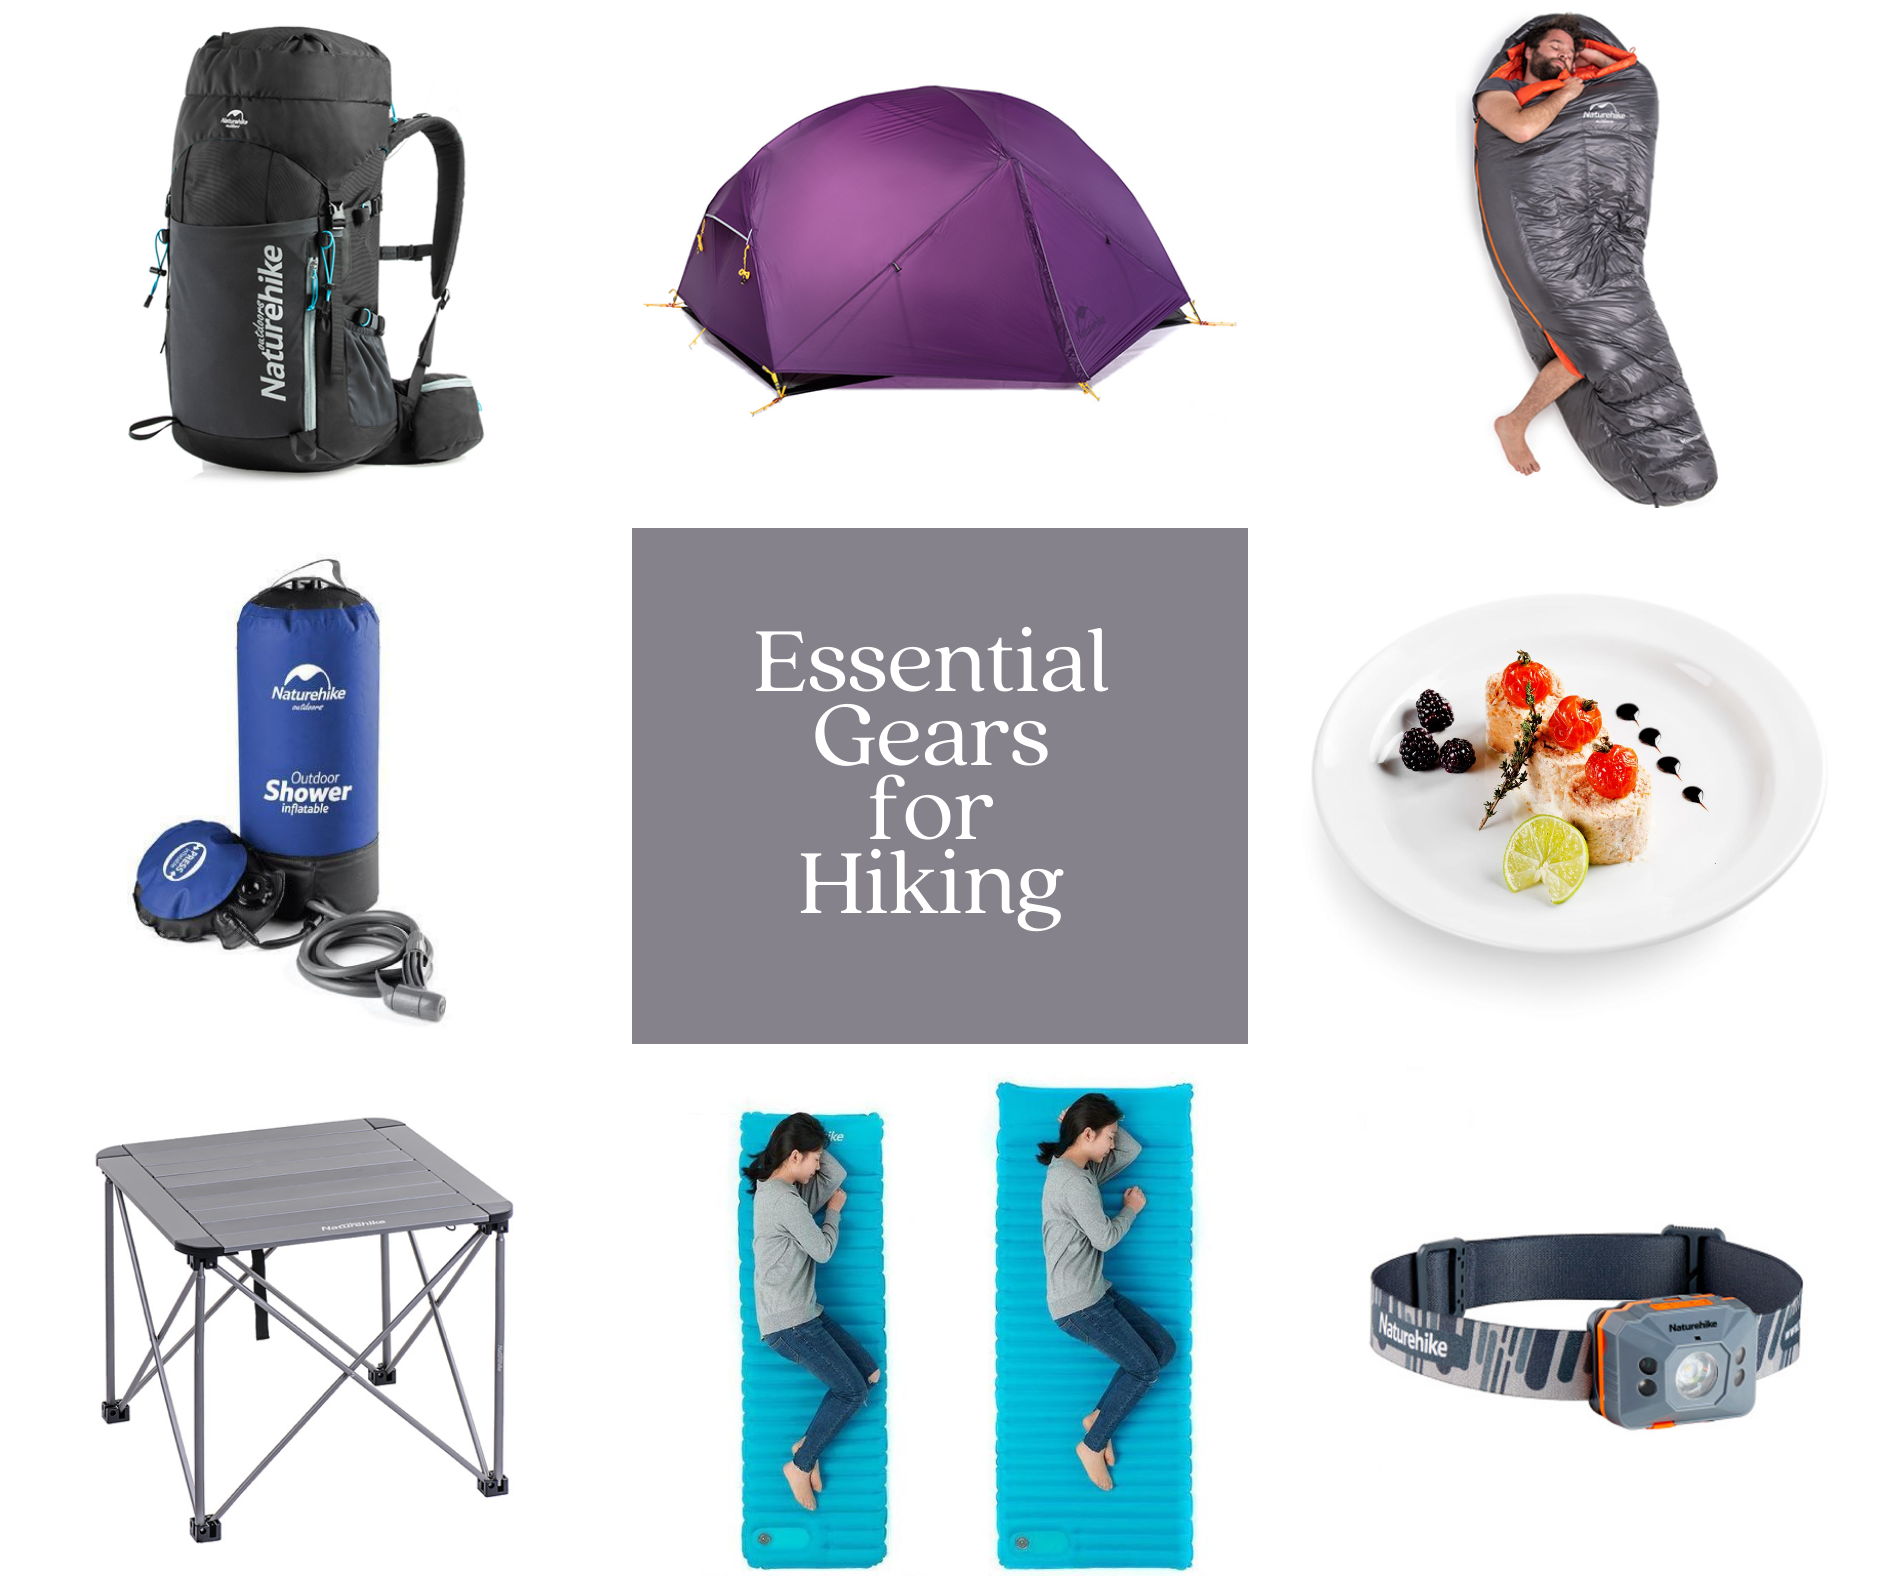 How to Find the Perfect Camping Gear